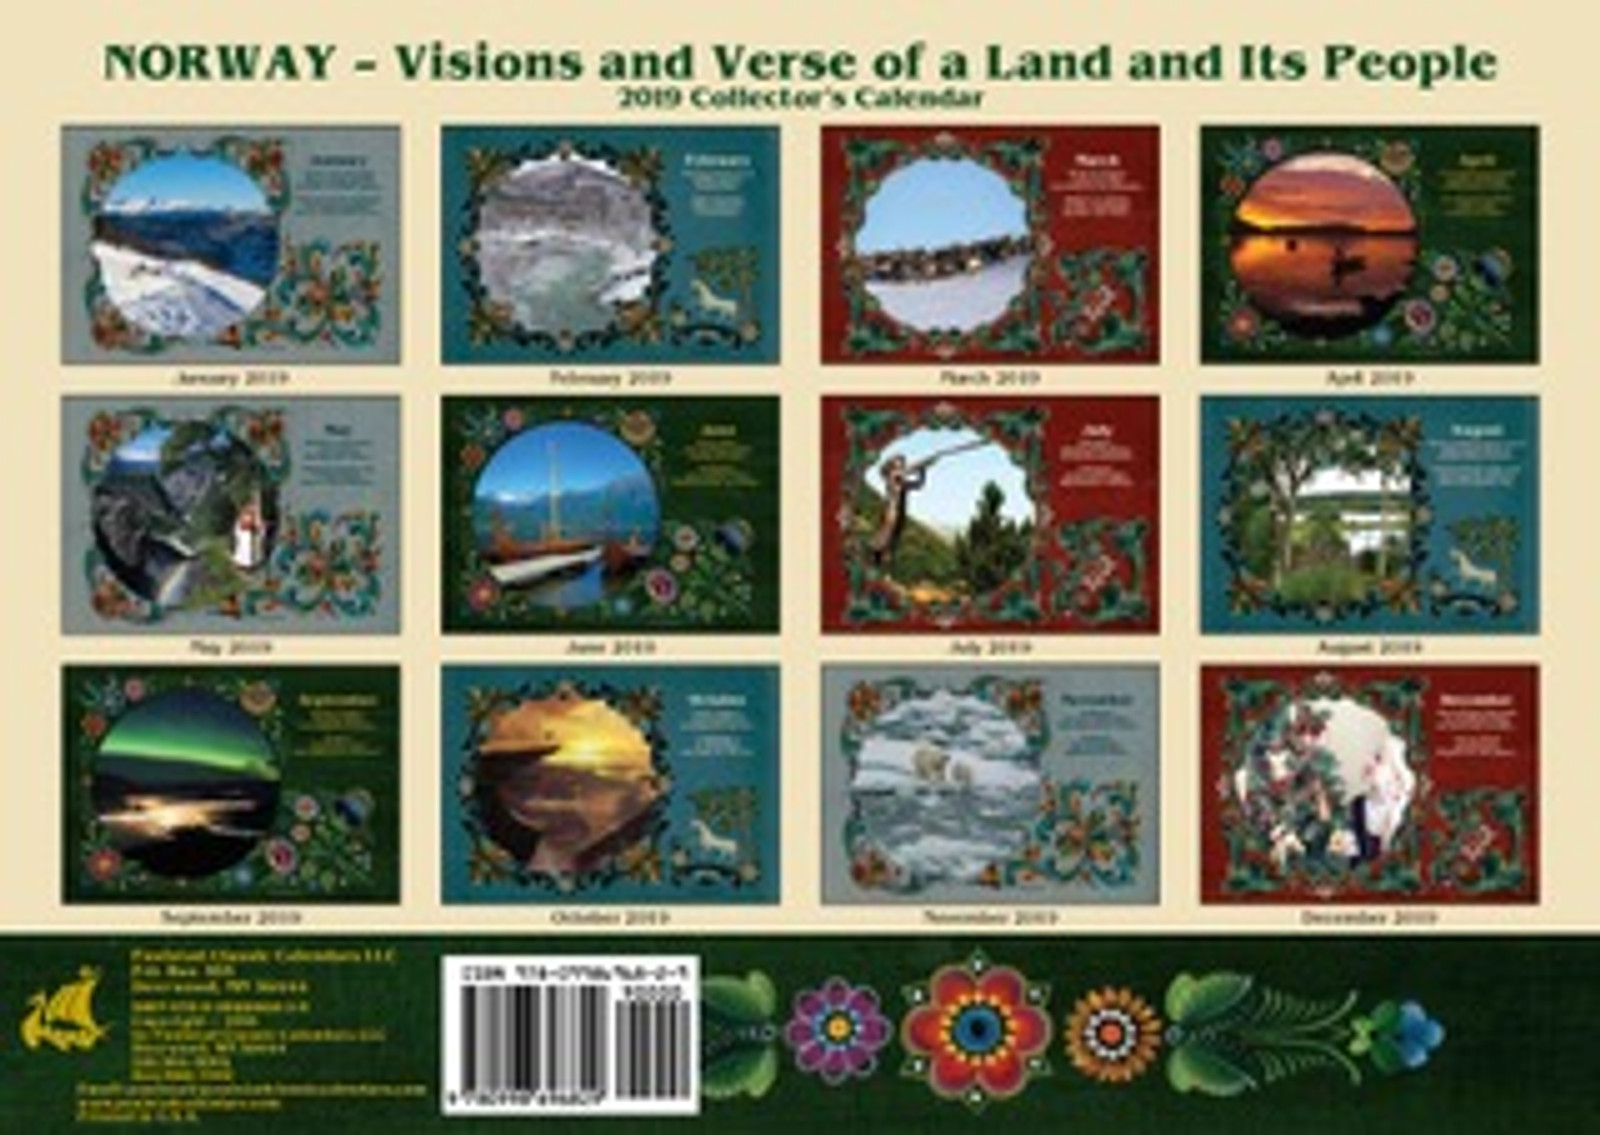 Back of the Paulstad 2019 Norway Visions and Verse Calendar